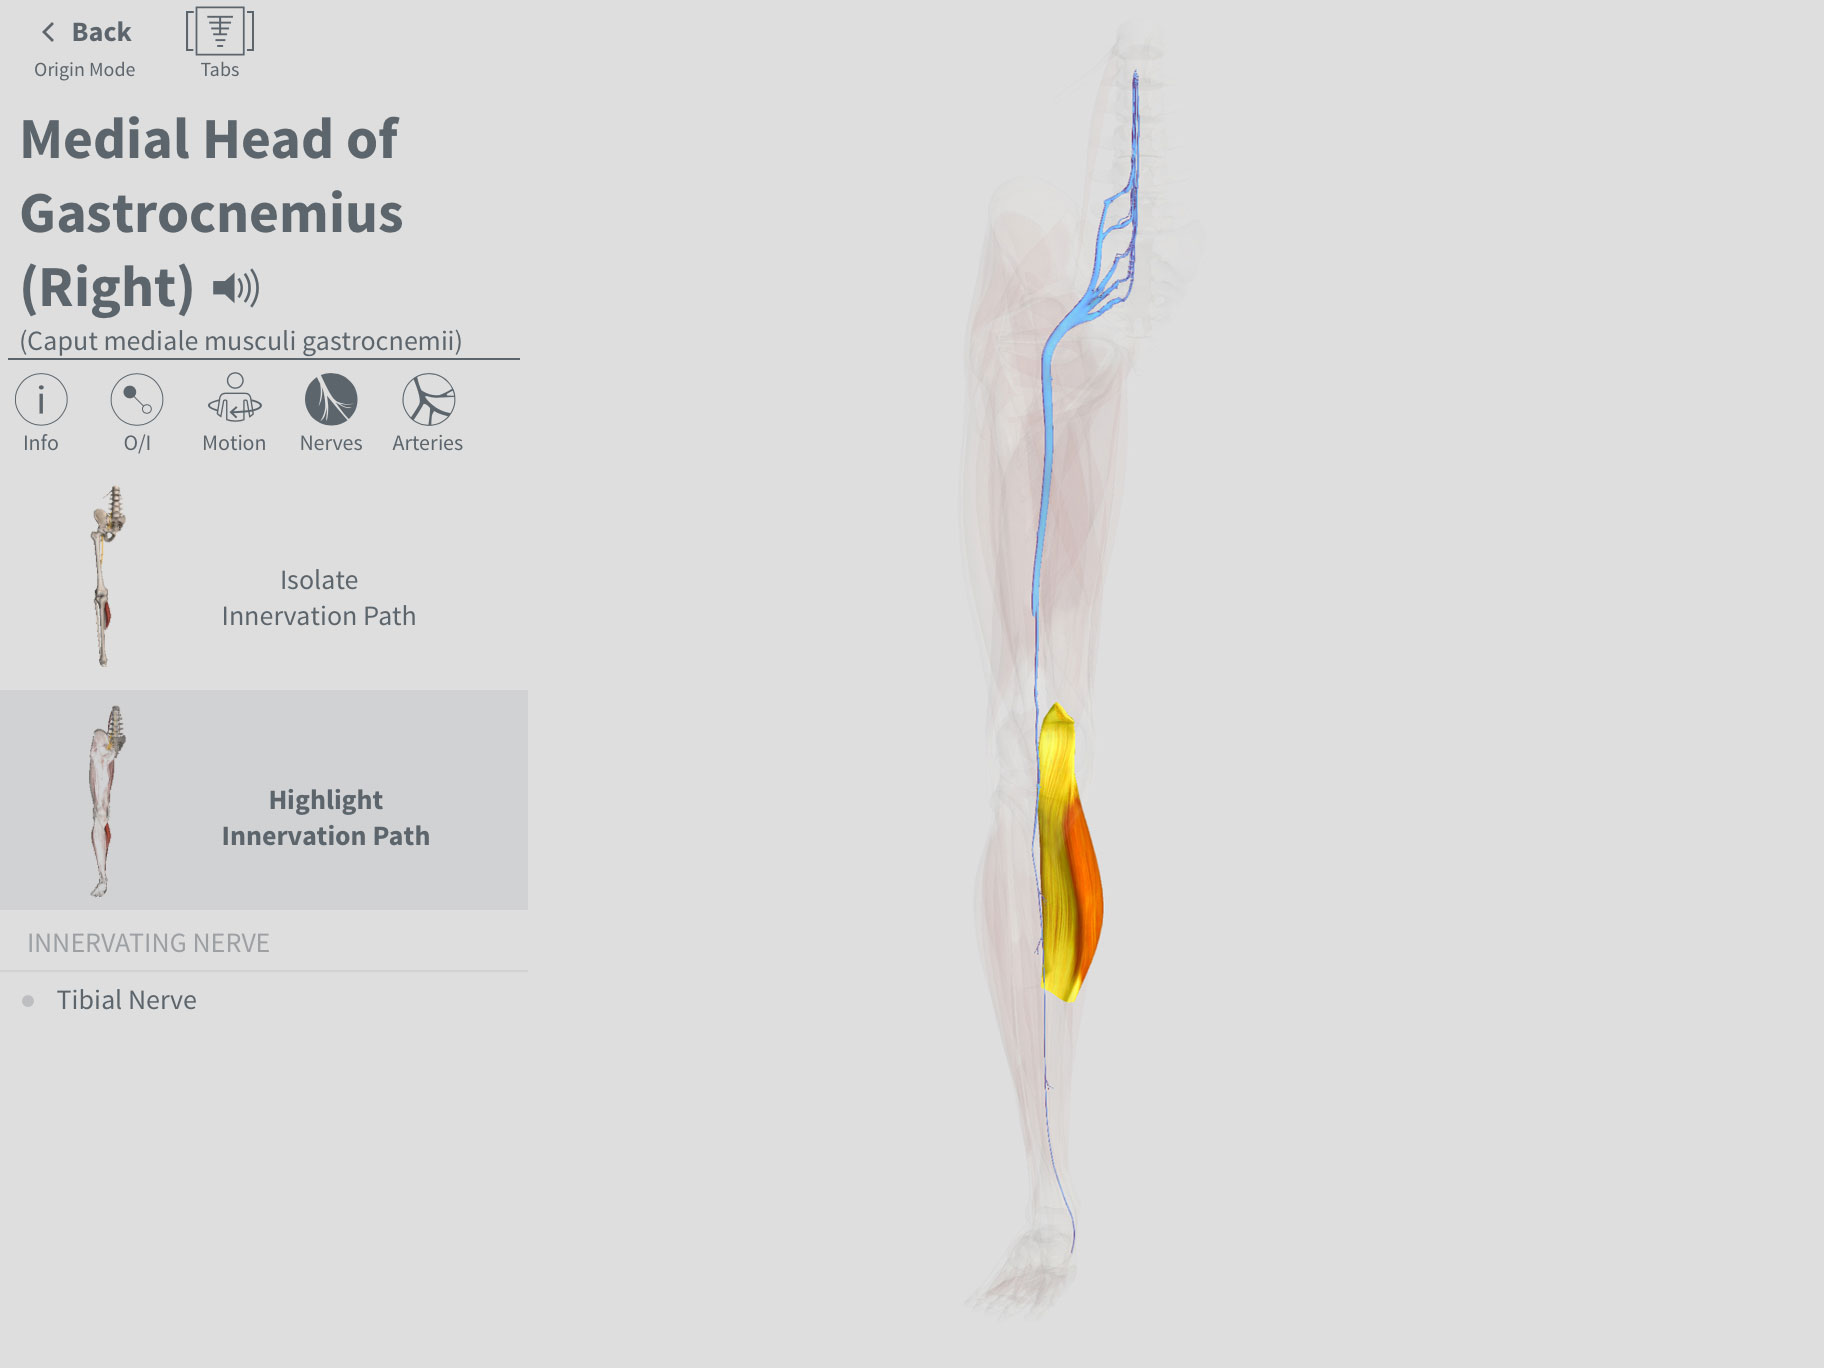 Complete Anatomy Free Trial 3d4medical Statics Course Body Diagrams Click Here To See The Full Explore Over 6500 Structures Across 12 Systems In Breathtaking 3d Say Goodbye Static Textbook And Discover A Whole New